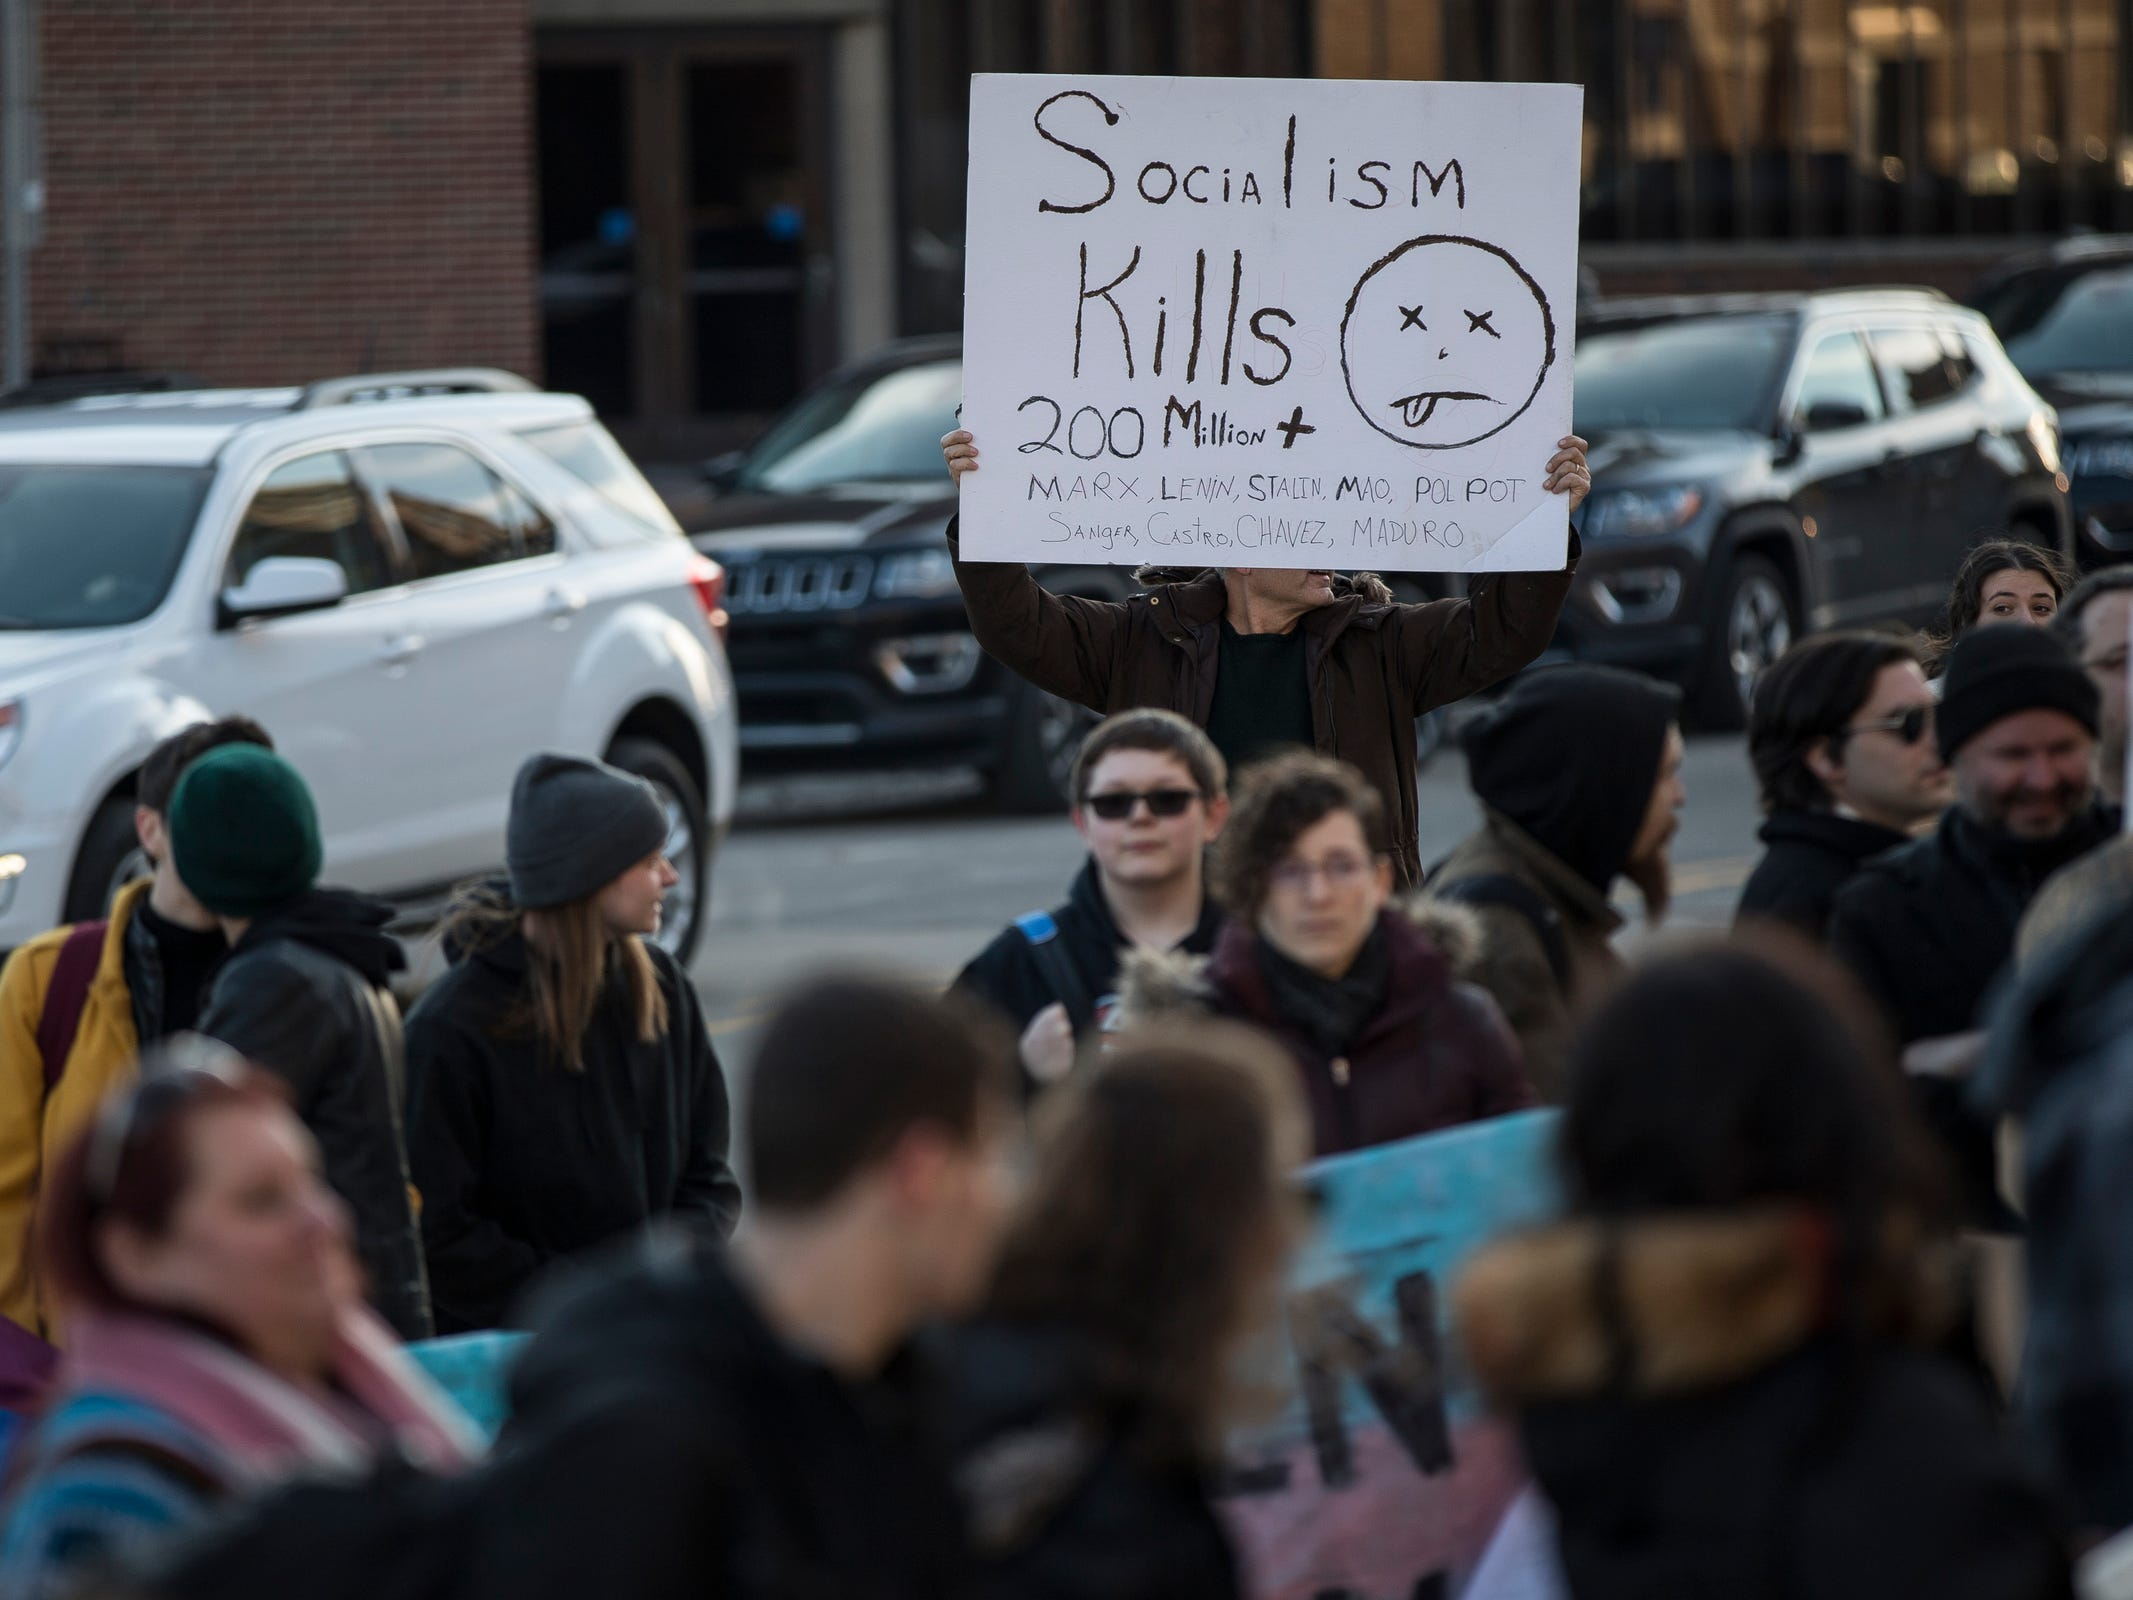 Protesters and counter protesters protest outside of the Rackham Auditorium on U-M central campus in Ann Arbor as attendees enter the building for Ben Shapiro's speech, Tuesday, March 12. , Tuesday, March 12, 2019.